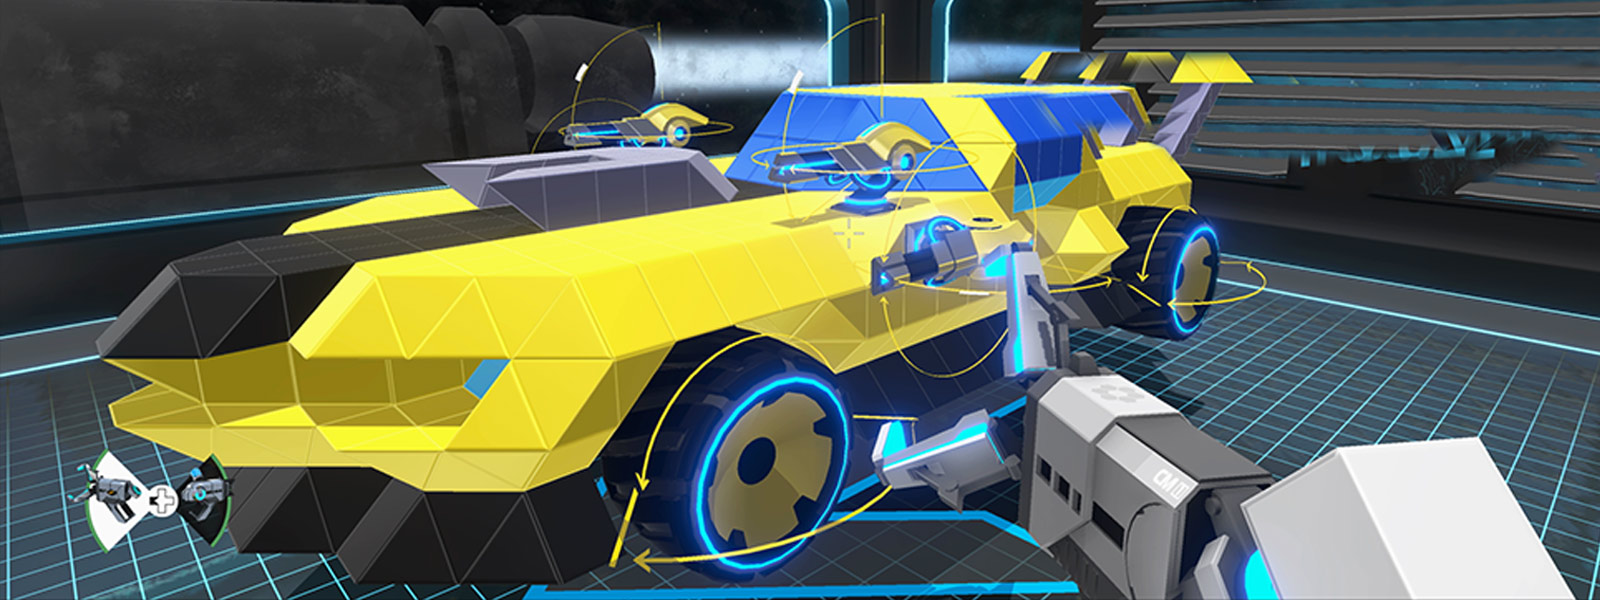 A vehicle with small turrets gets worked on by a claw grabbing tool